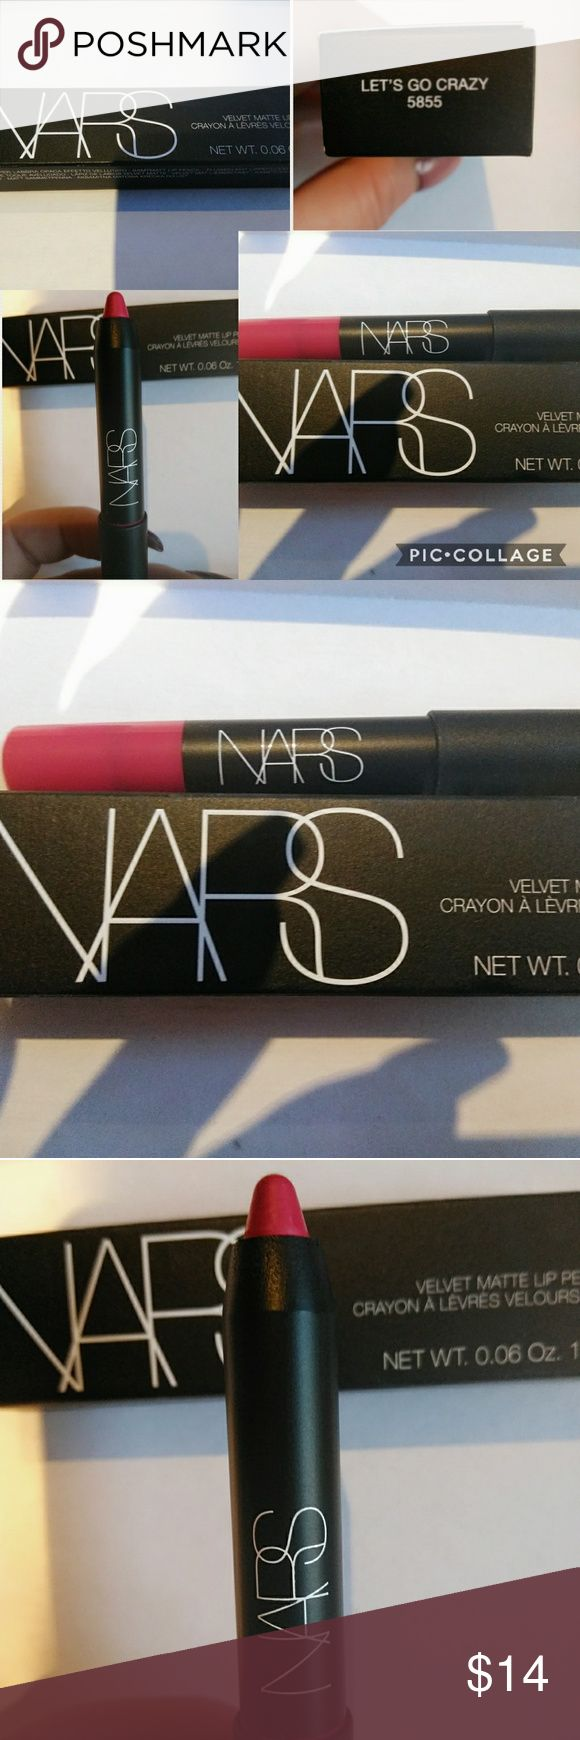 BNIB NARS 'Let's Go Crazy 5855' matte lip pencil Brand new in box Nars velvet matte lip pencil in (Let's Go Crazy 5855)1.8/0.06oz  has not been used and only taken out of box for these photos. A beautiful color just not the color for me.  ***Bundle and Save*** NARS Makeup Lipstick